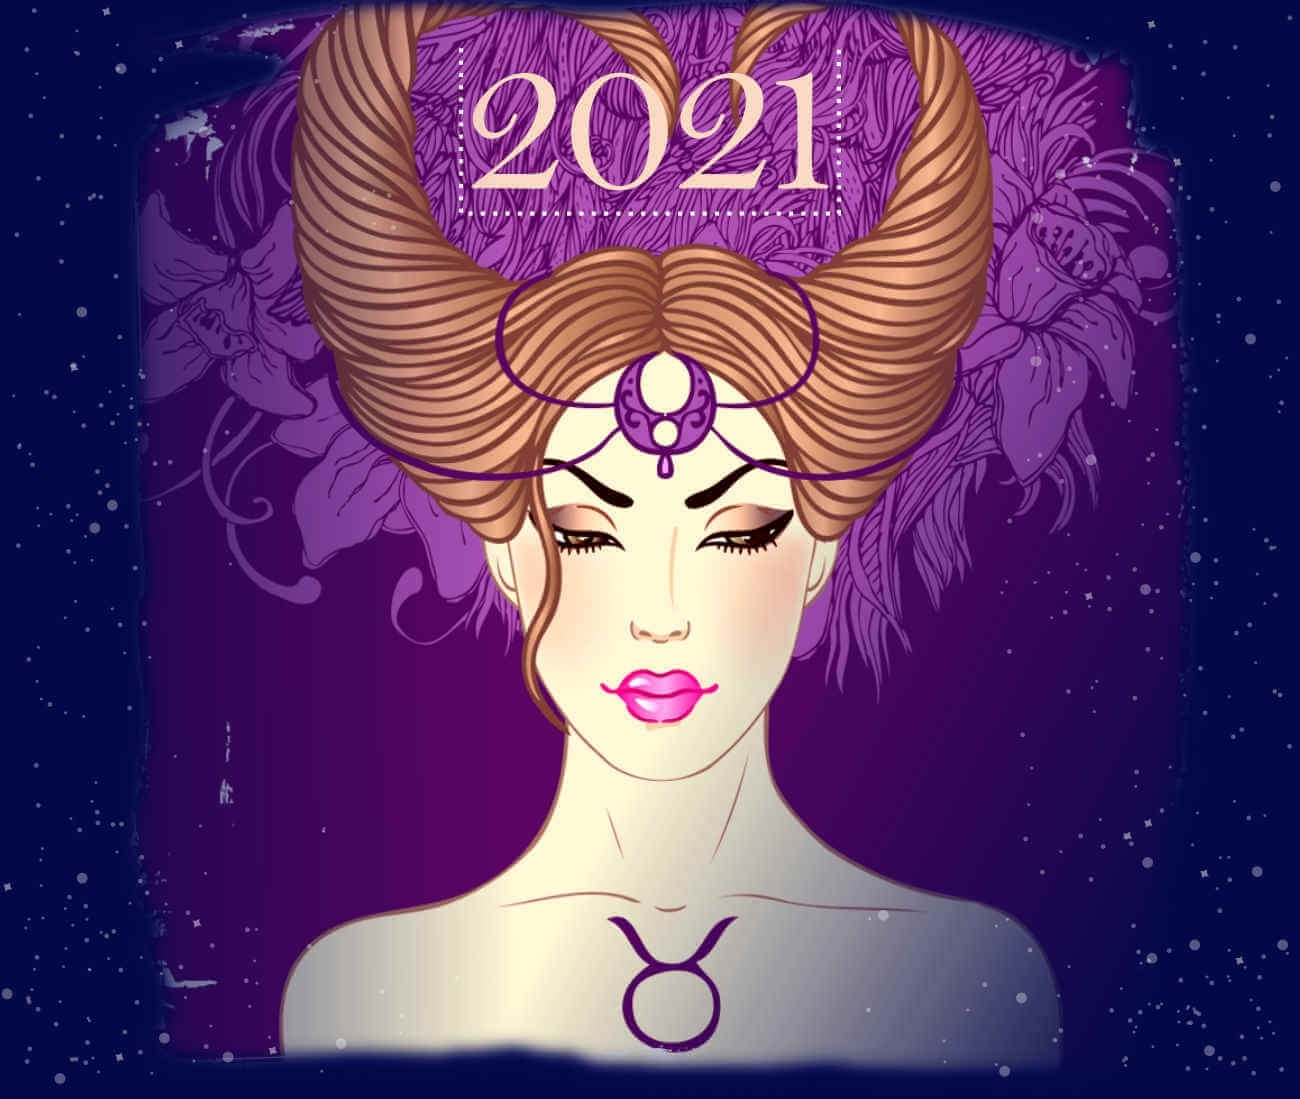 (Photo: Horoscope and divination)